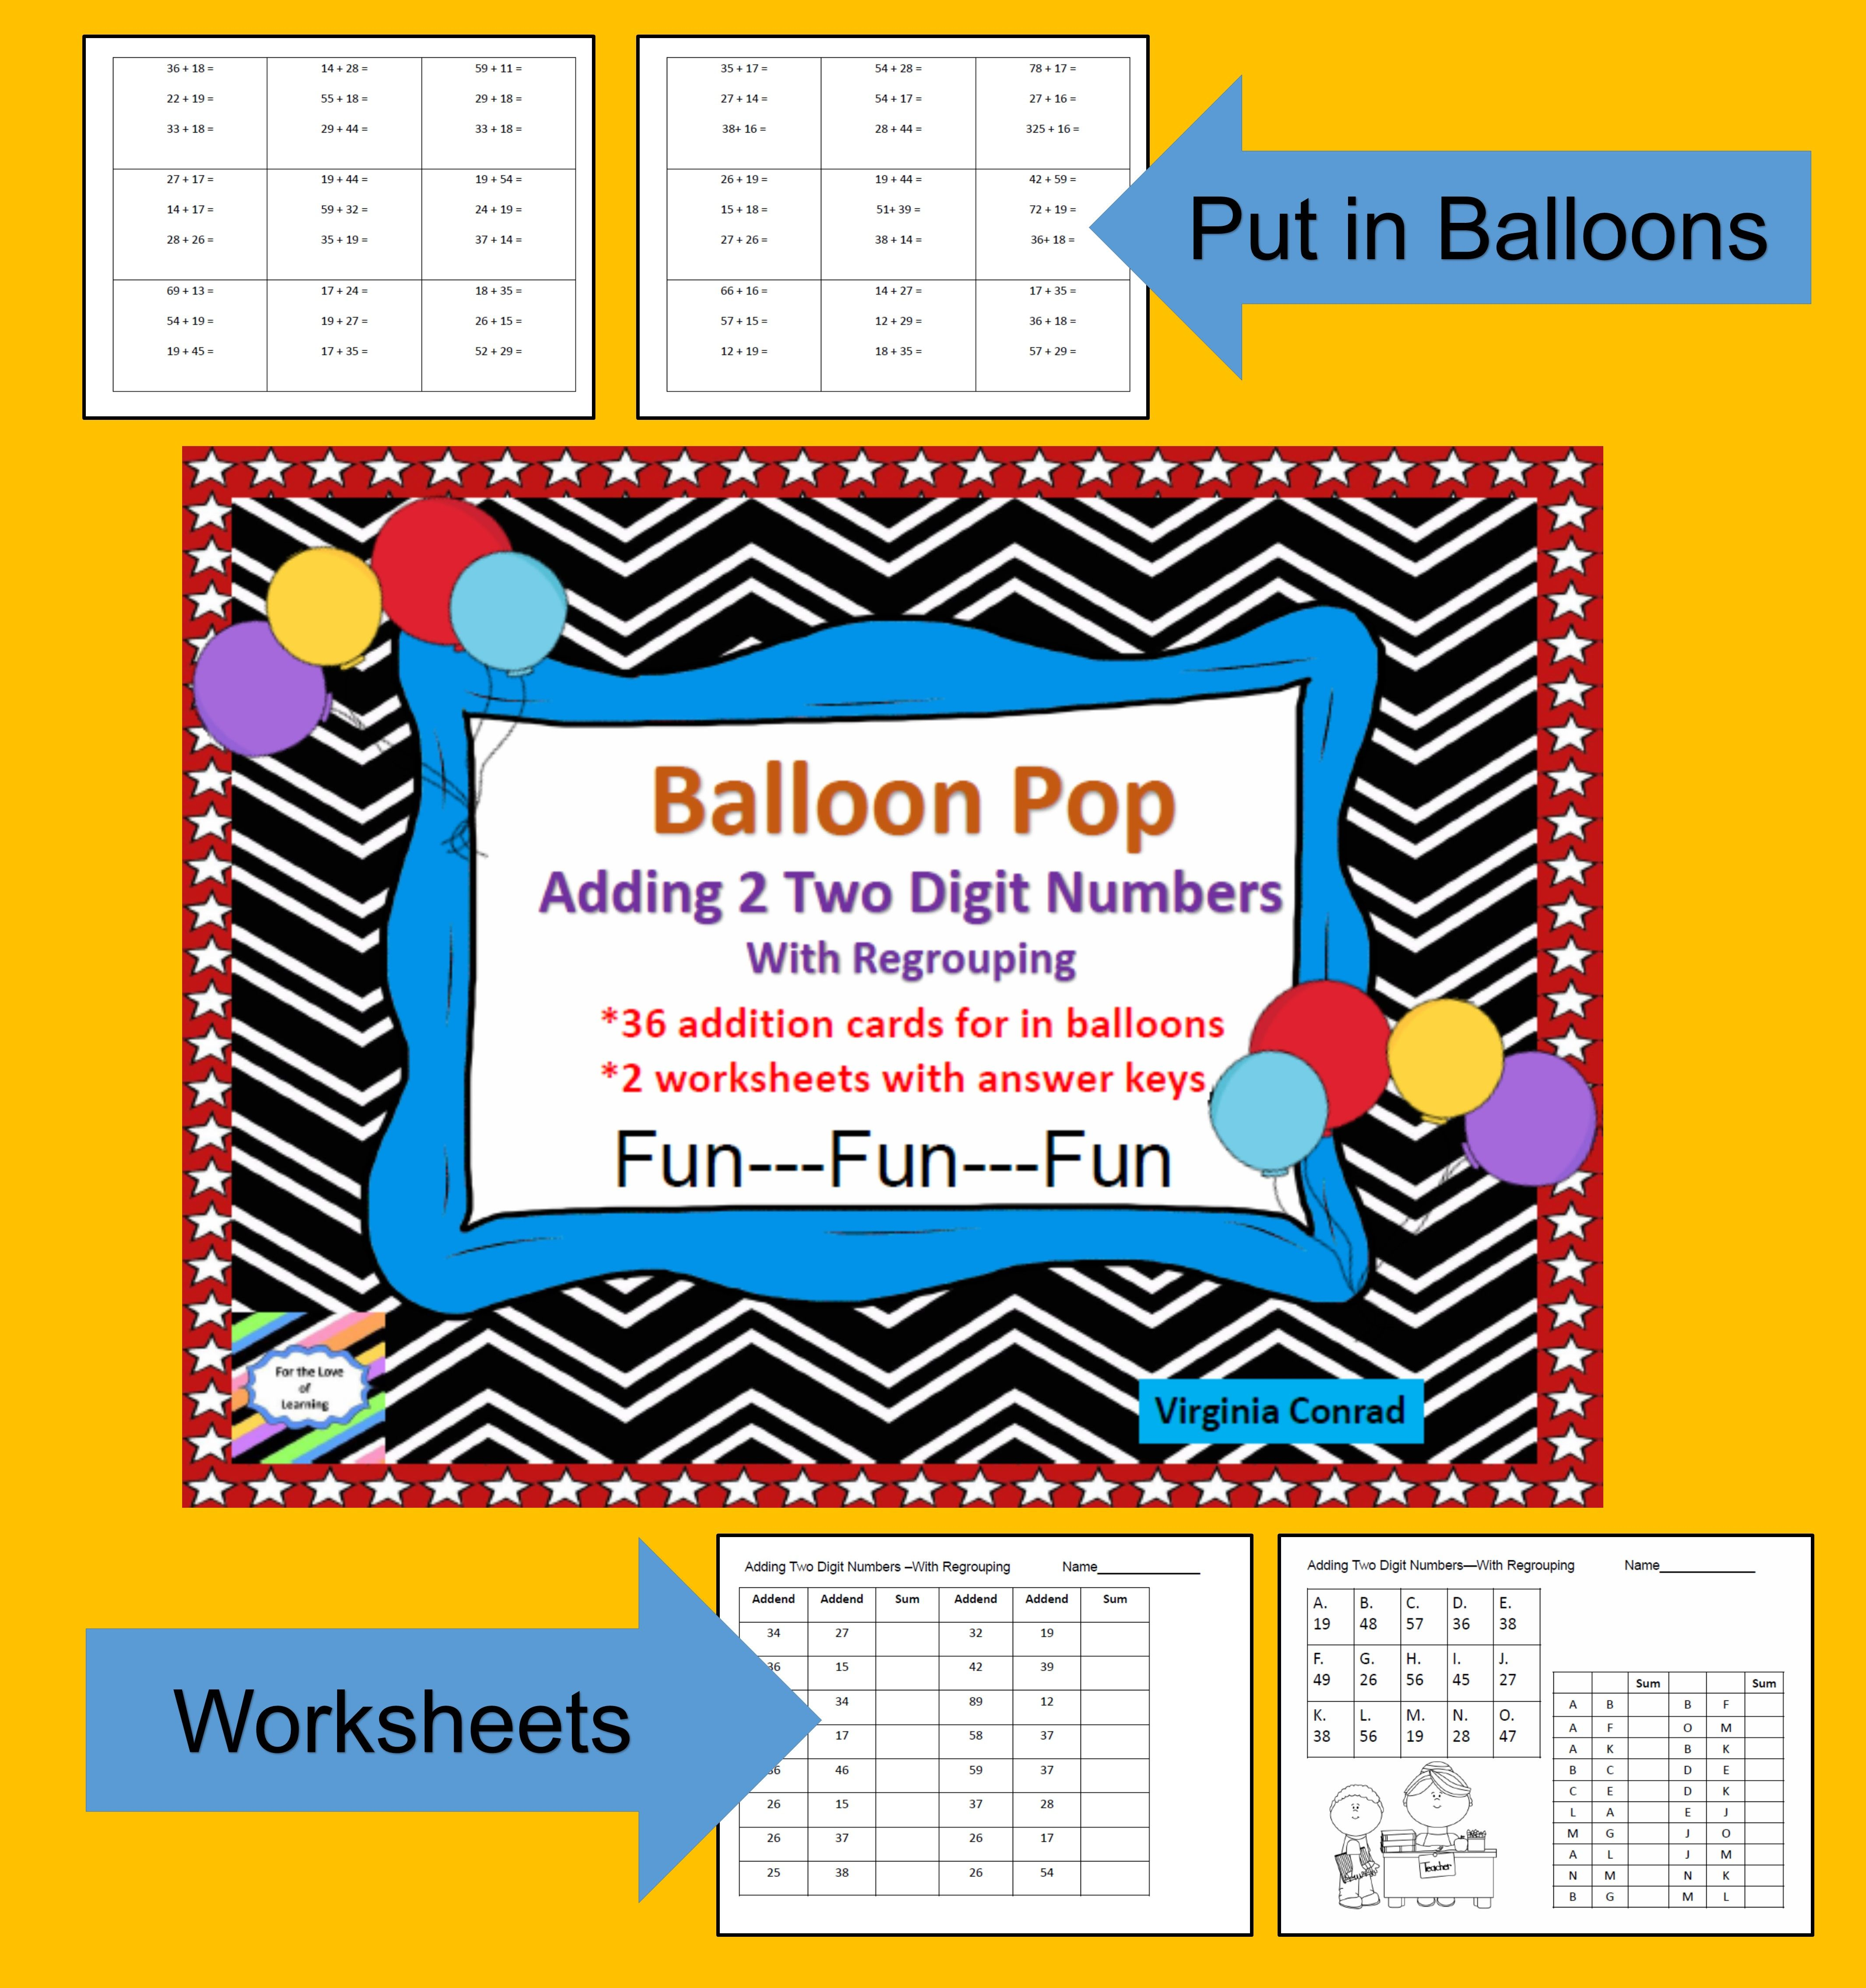 Adding 2 Two Digit Numbers With Regrouping Balloon Pop